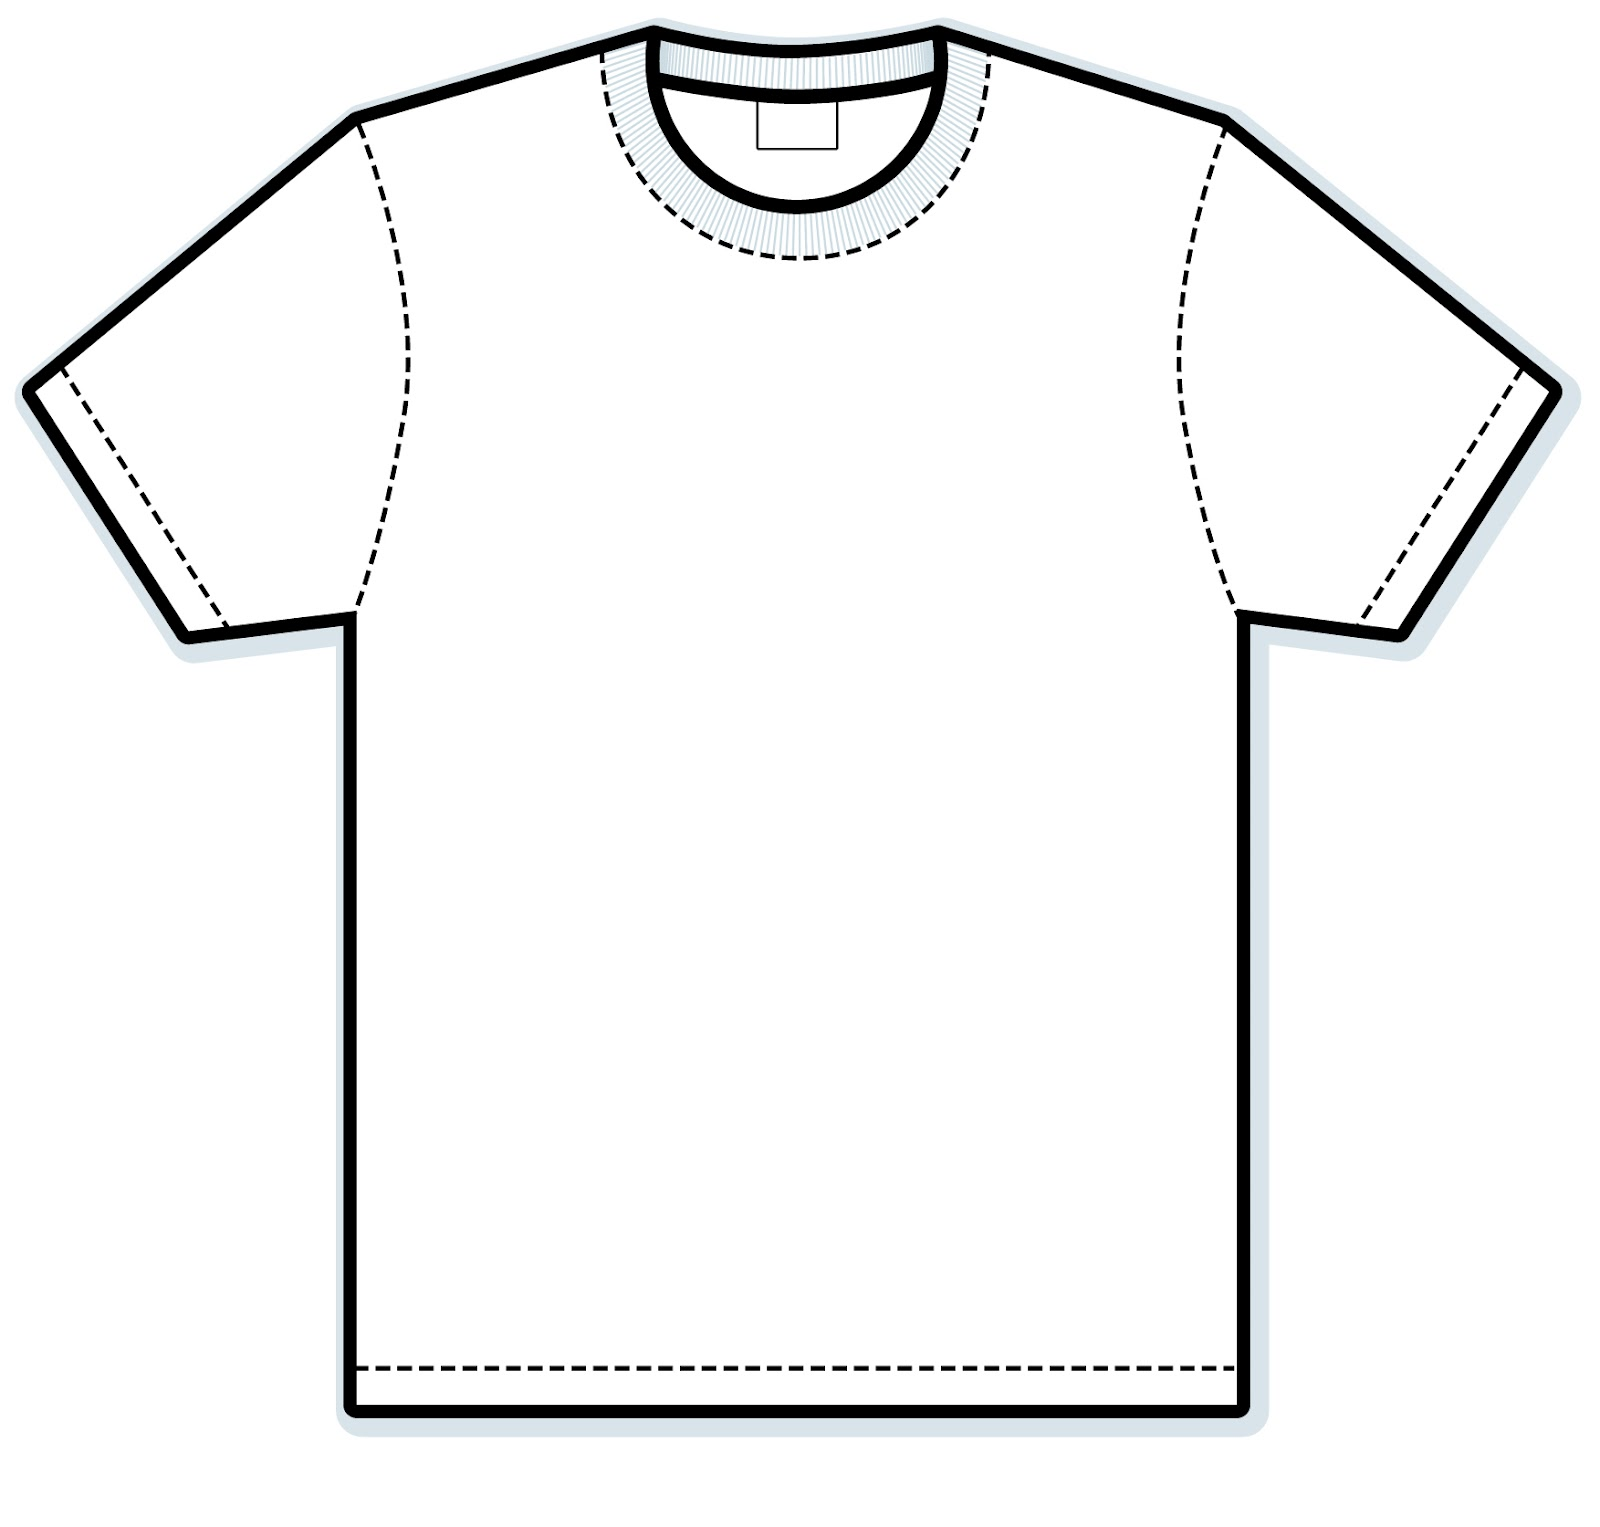 Free T Shirt Cartoon Cliparts Download Free Clip Art Free Clip Art On Clipart Library